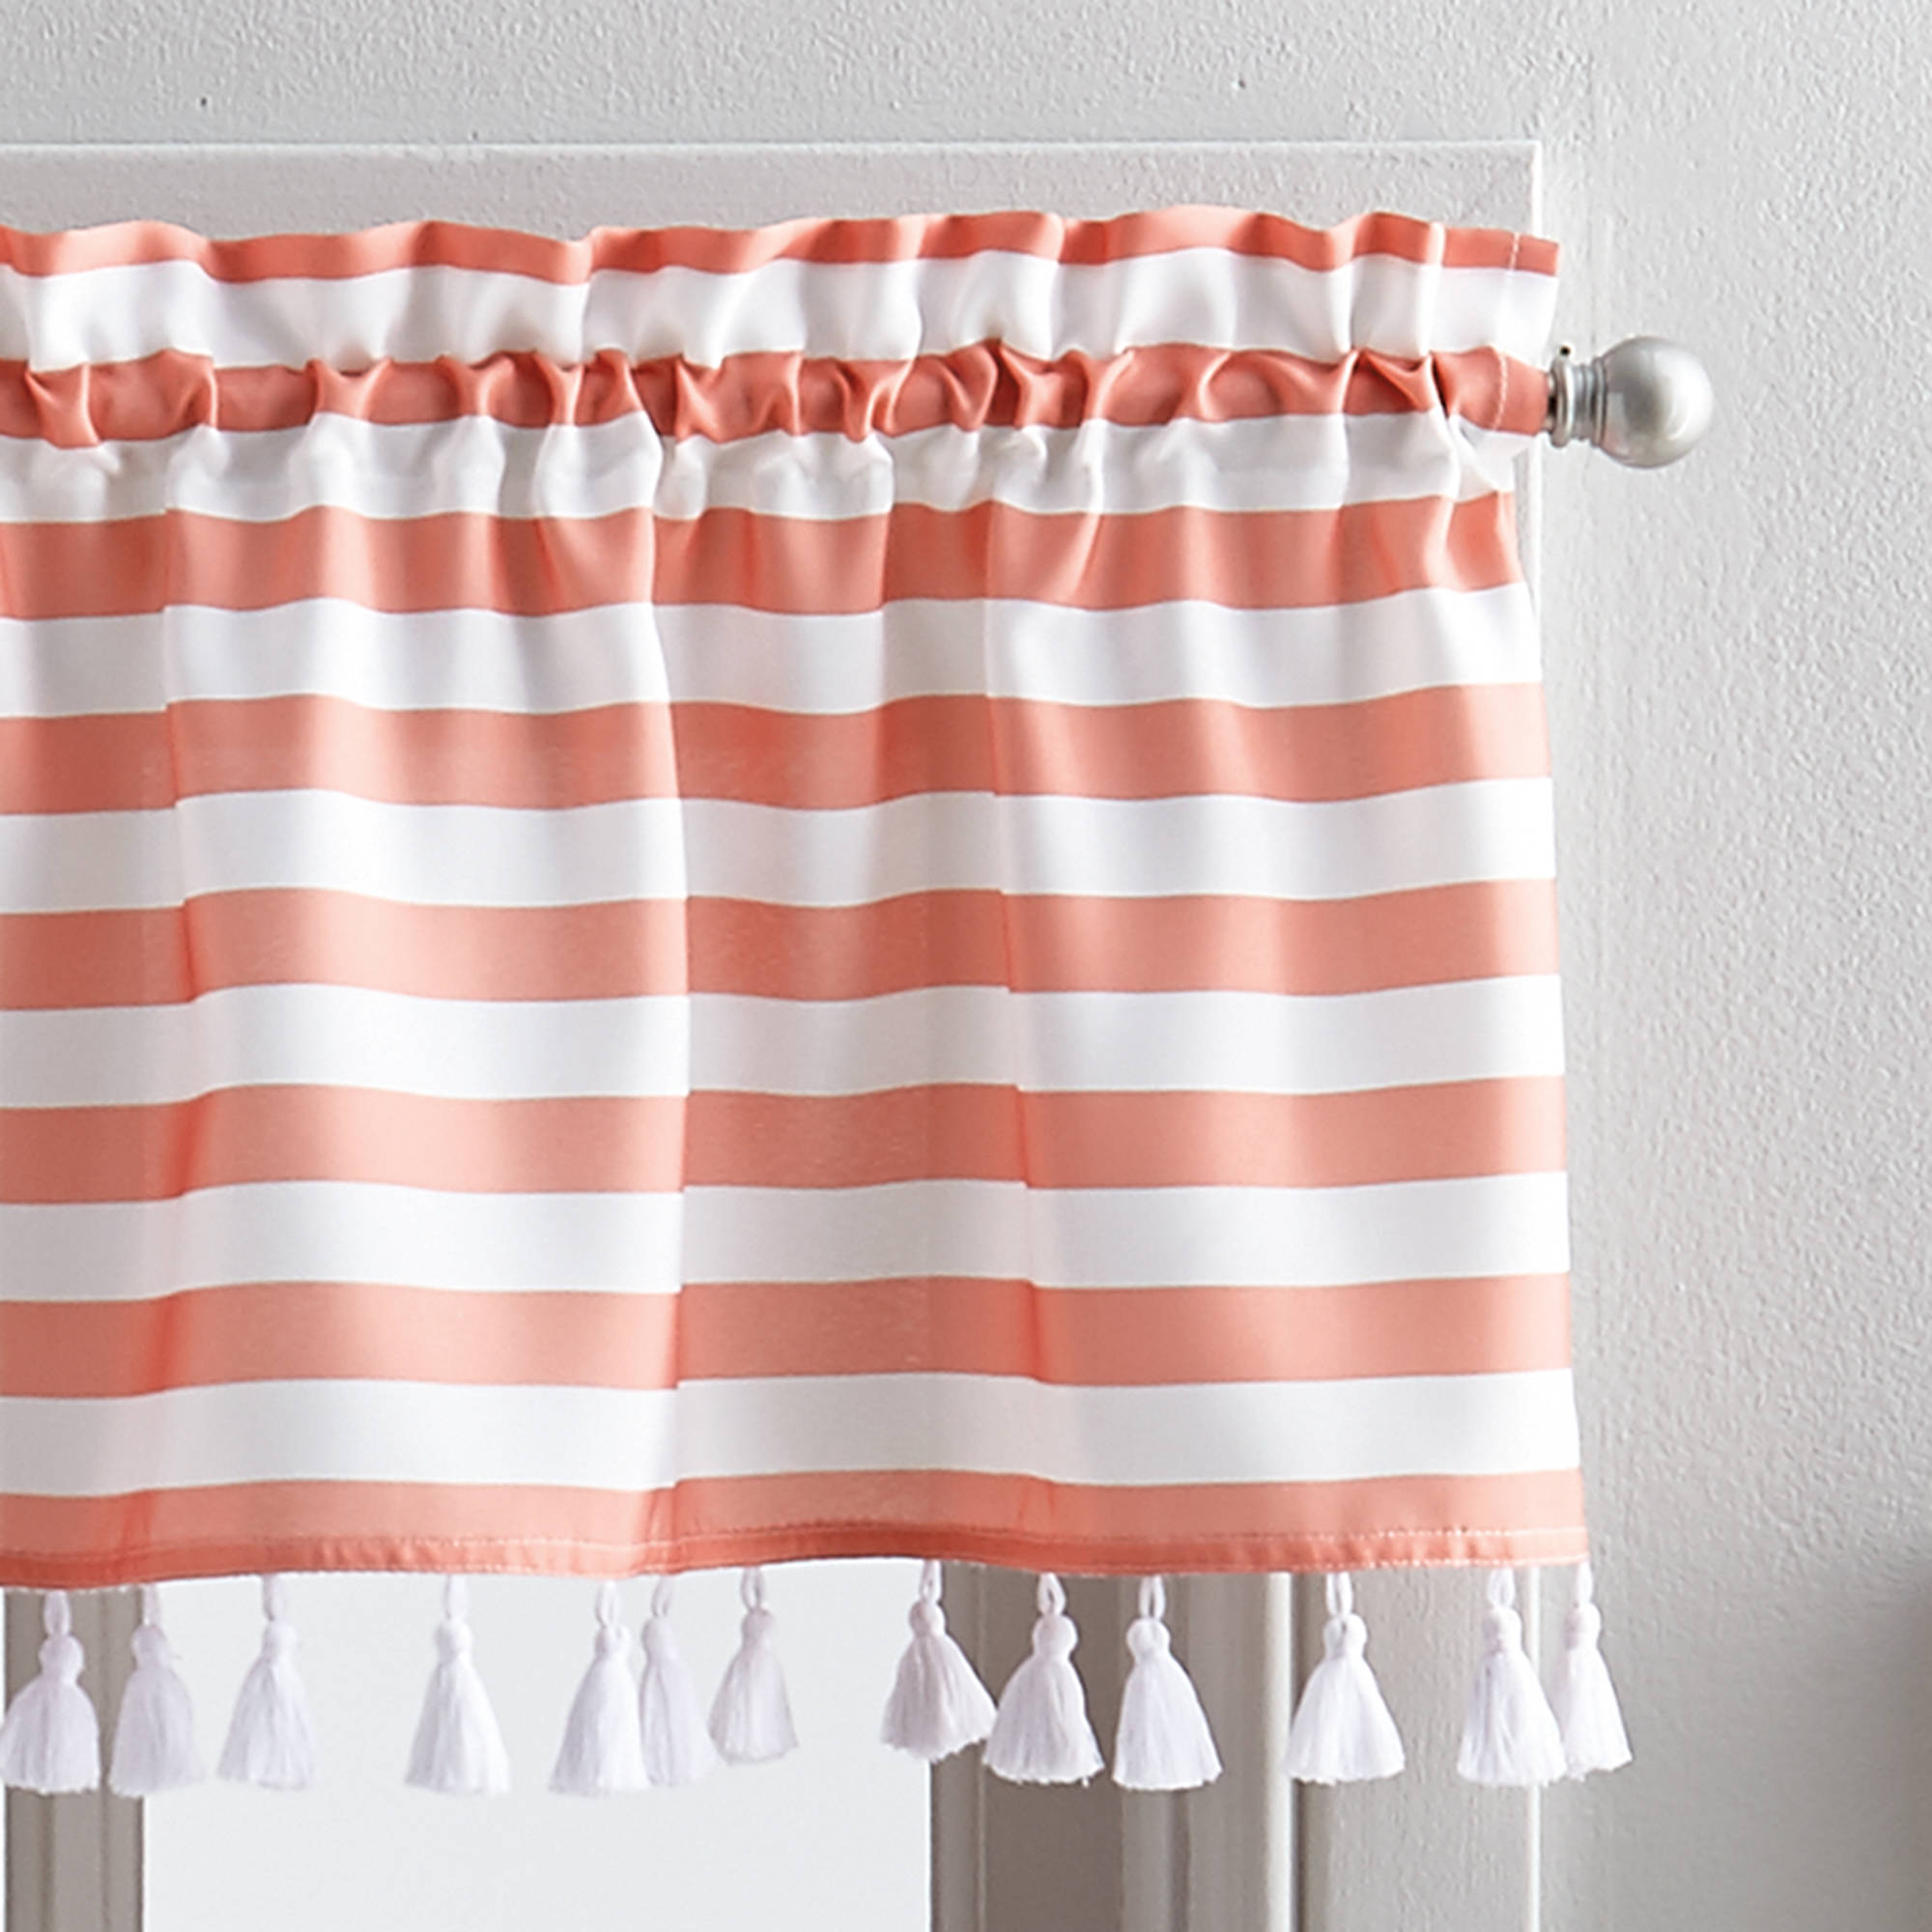 Better Homes and Gardens Stripes and Tassels Tailored Valance or Tier Pair